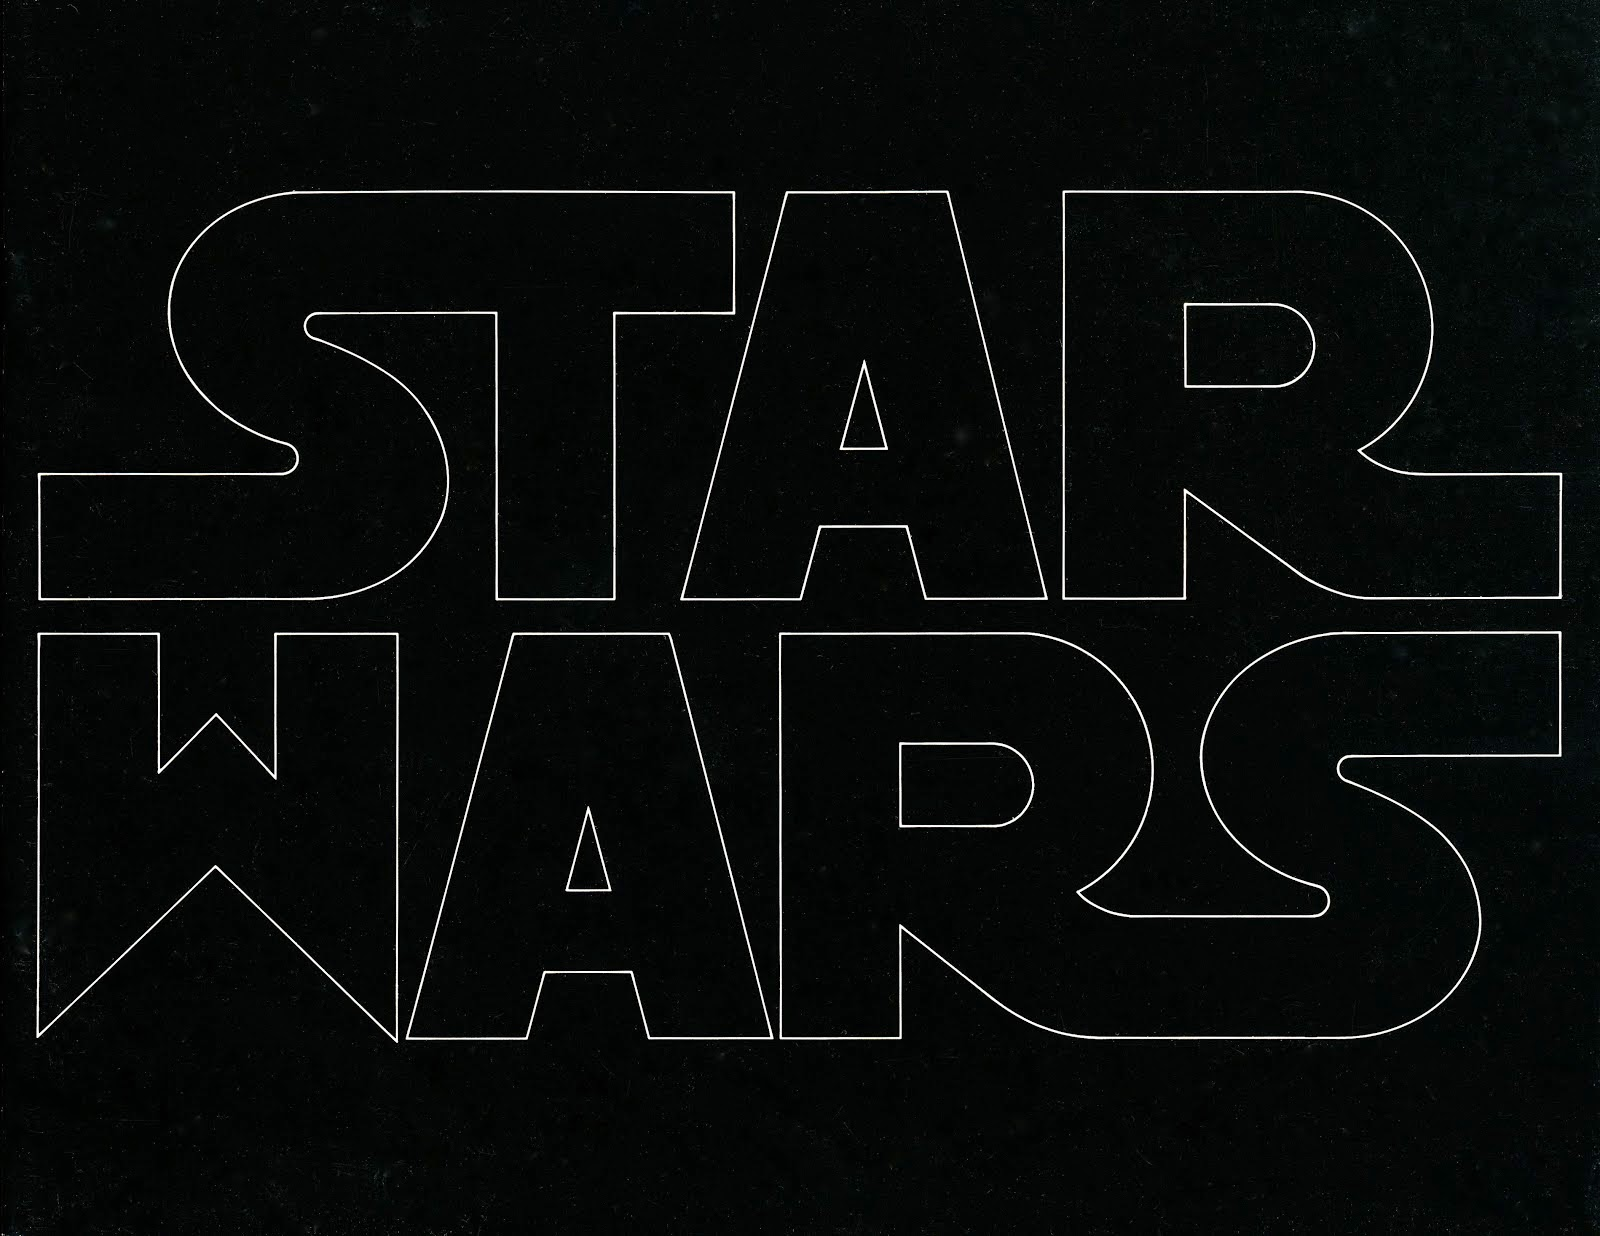 Episode Nothing: Star Wars in the 1970s: May the fonts be.